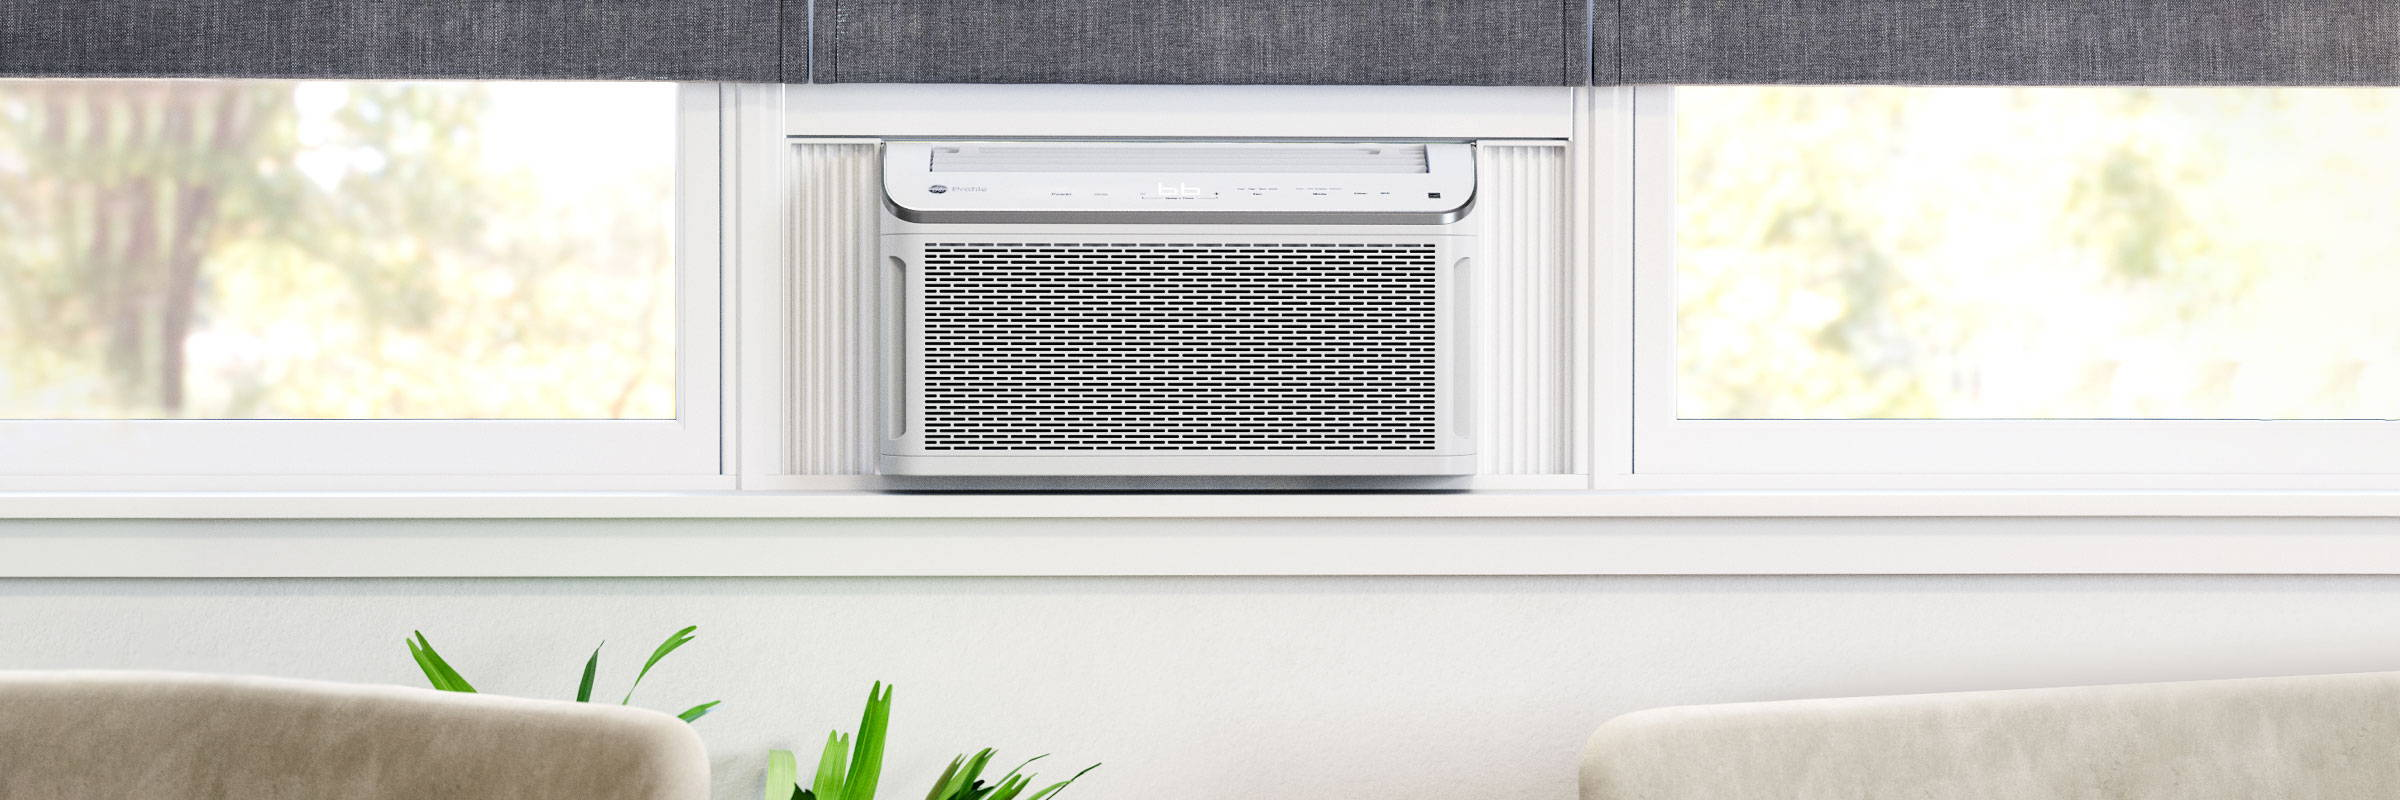 smart room air conditioner installed in a window.